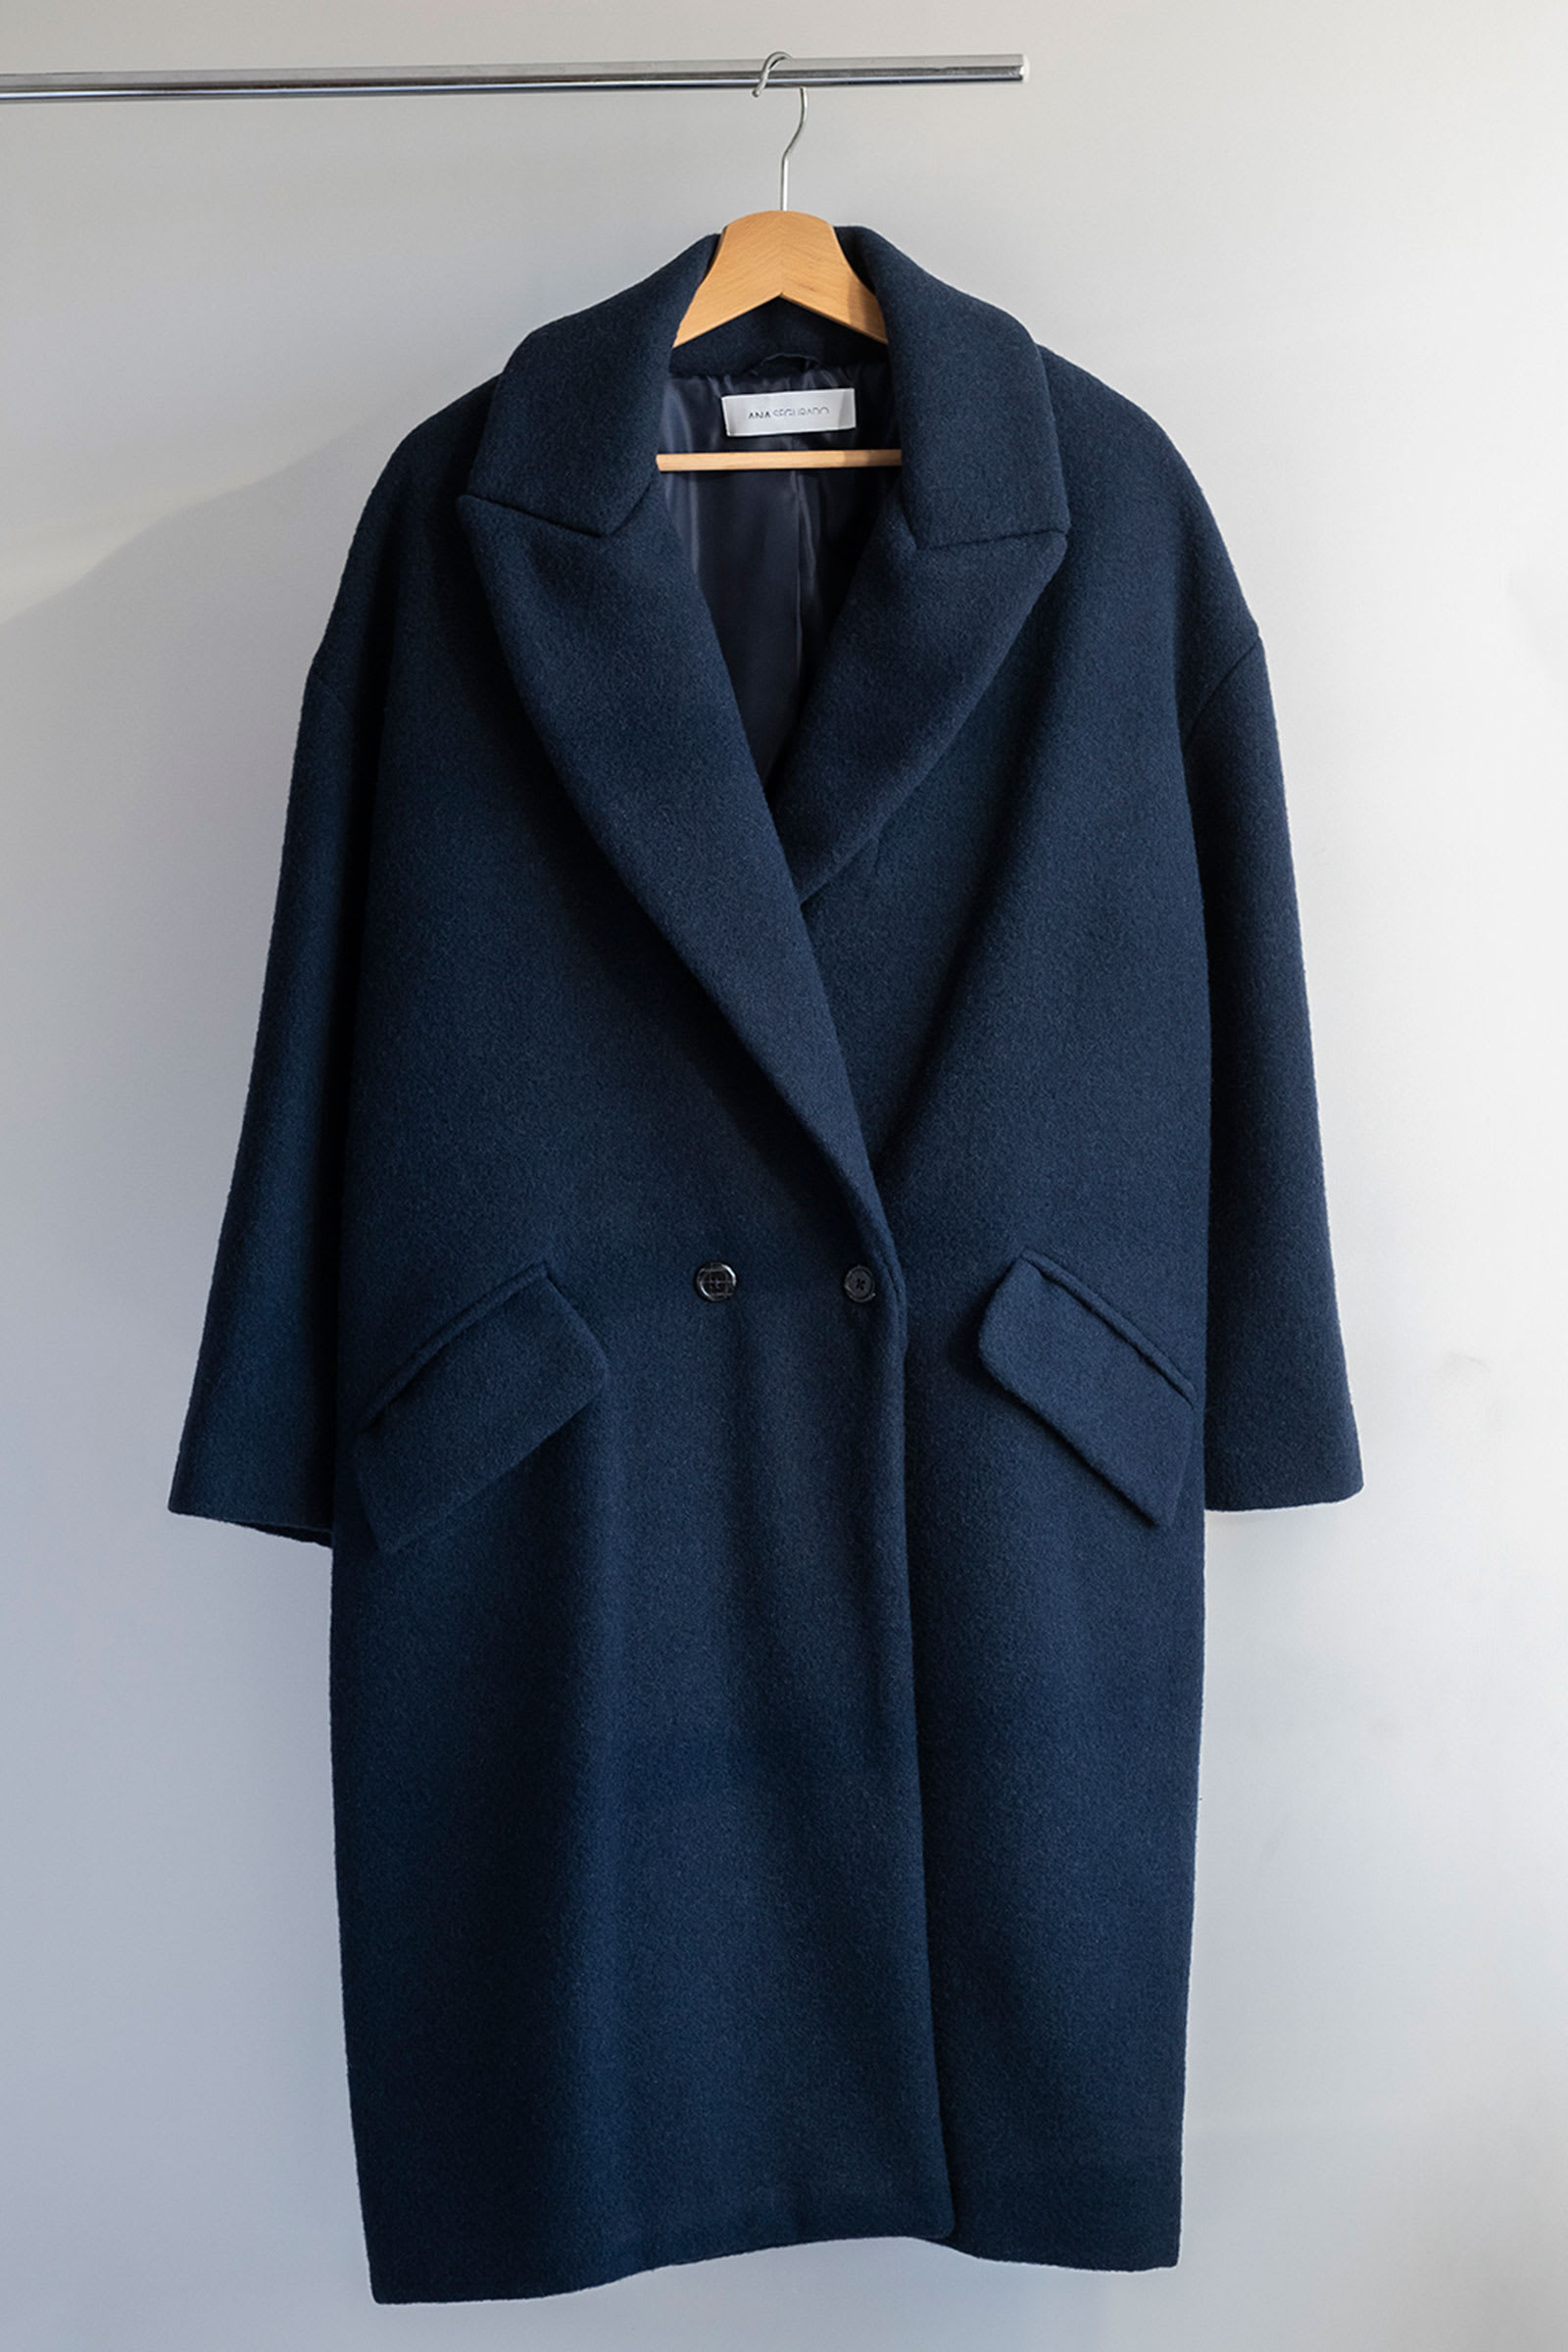 Sumiko Ecowool Coat Blue